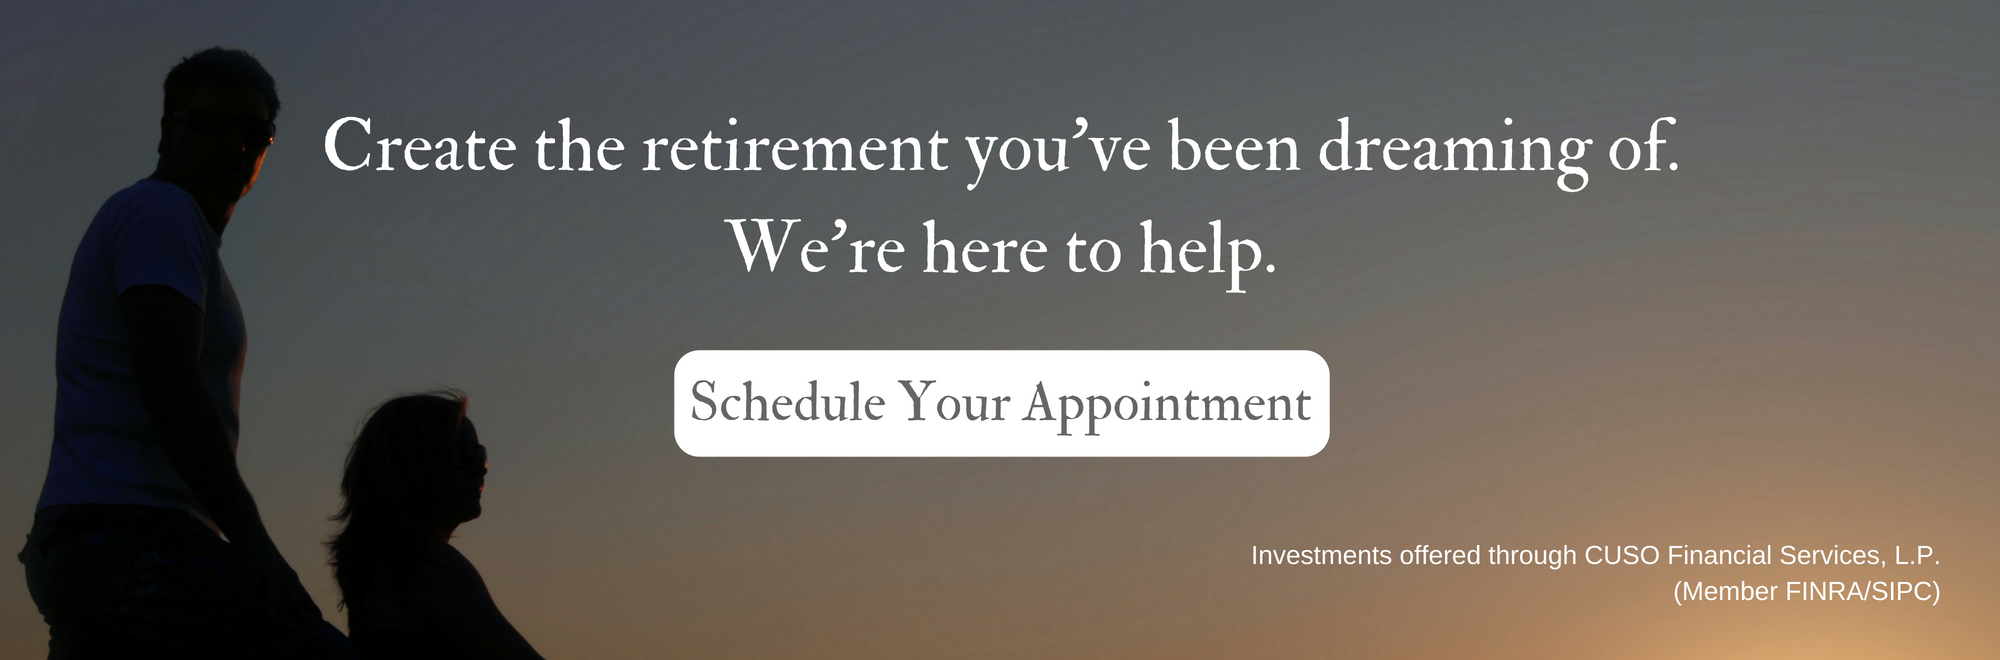 Retirement Services - Schedule Your Appointment Today